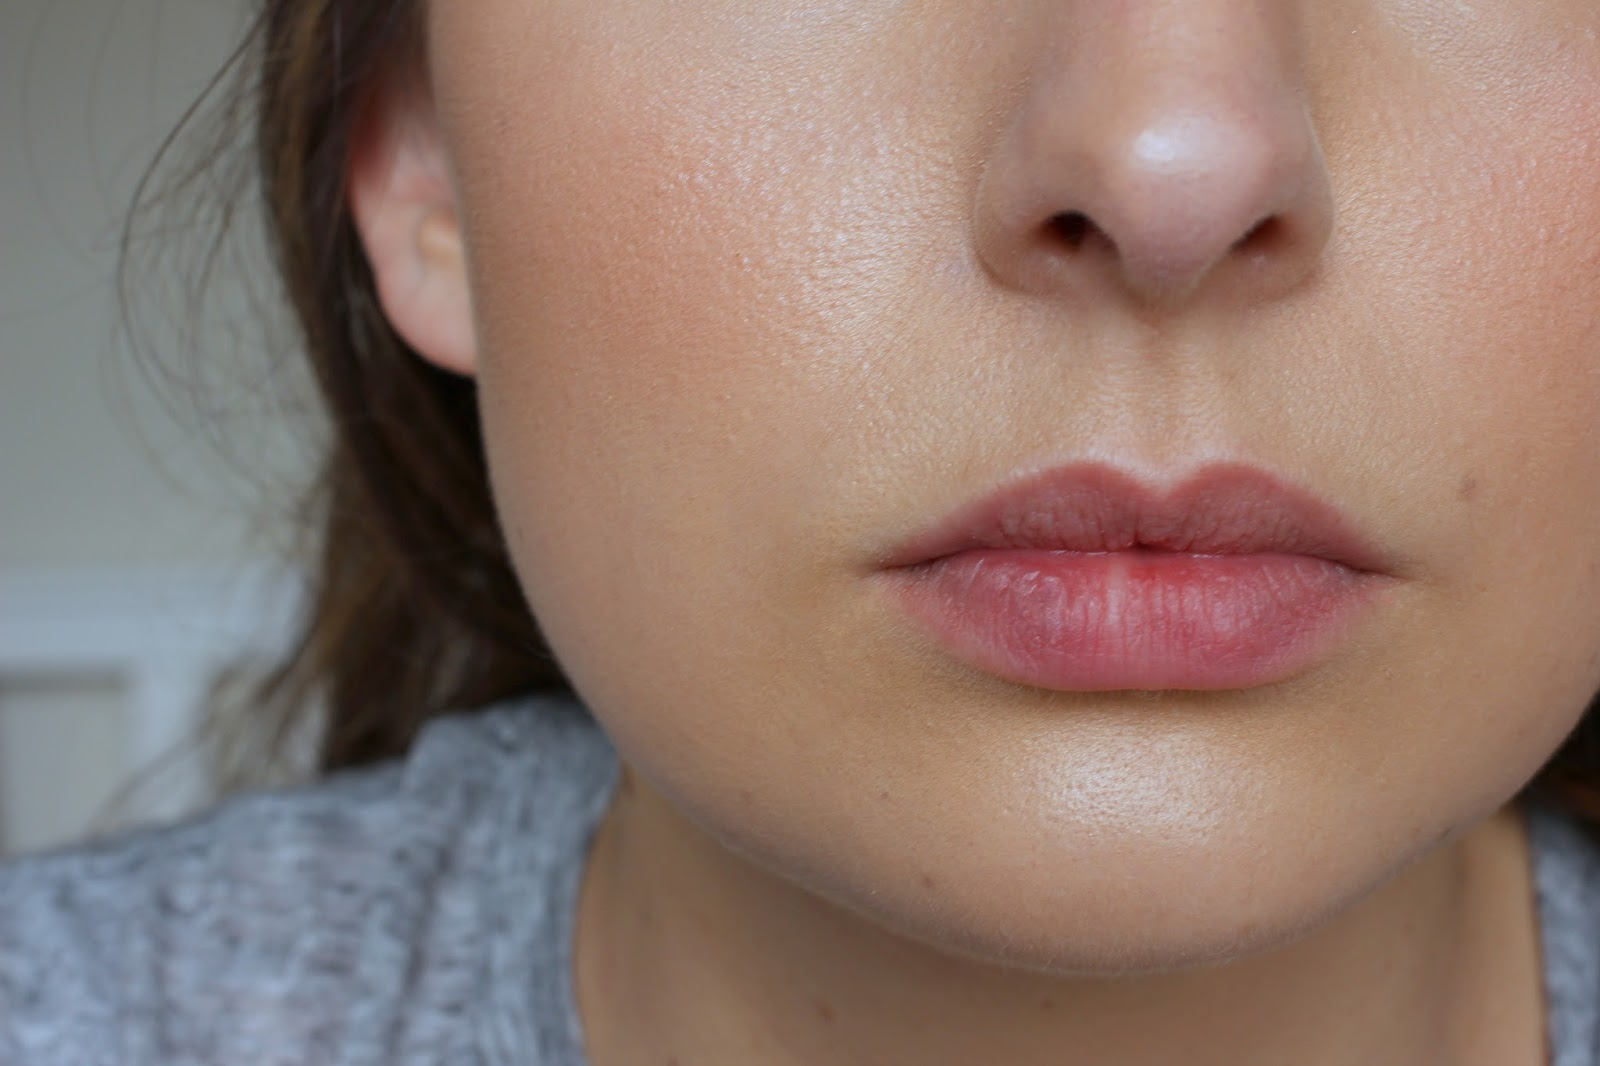 Review: Cosmedics Skin Clinics Mole Removal | The Beauty Informer